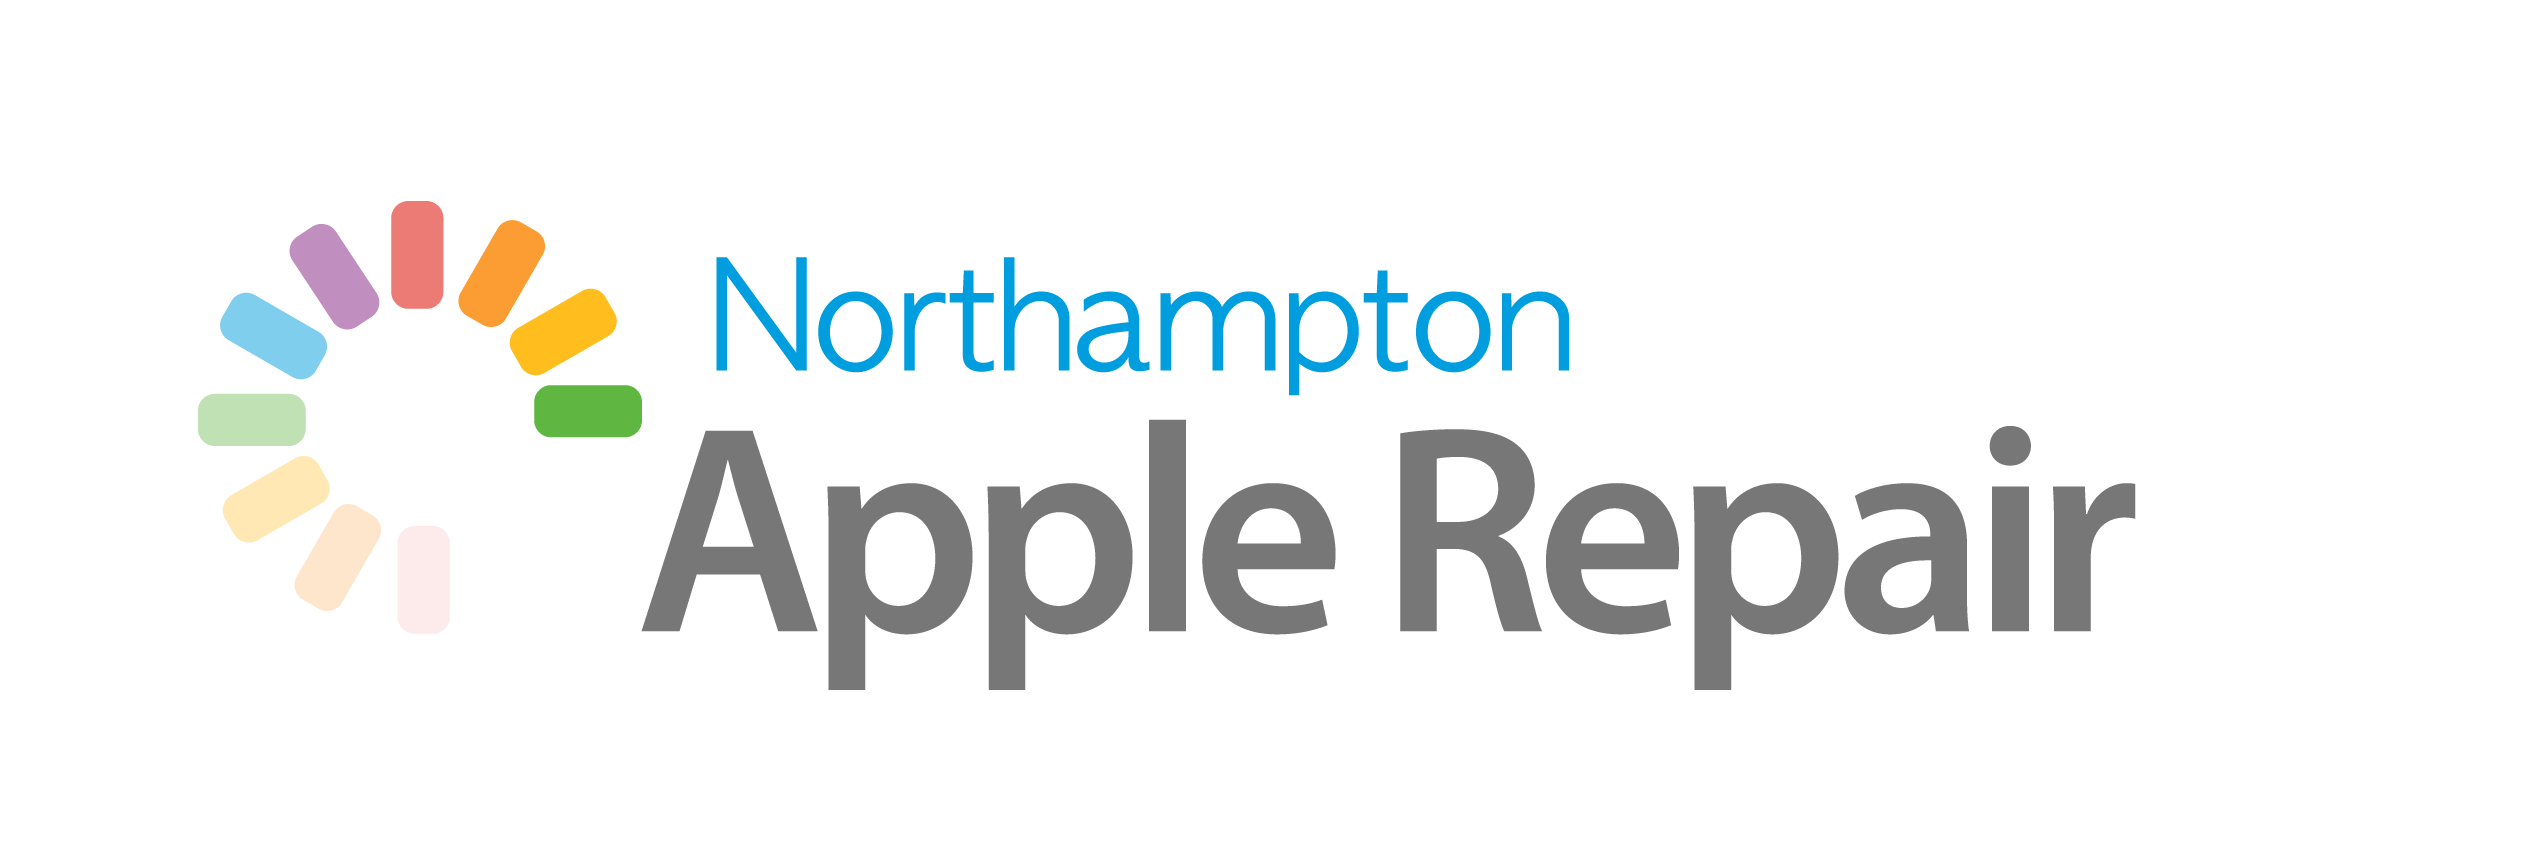 Northampton Apple Repair